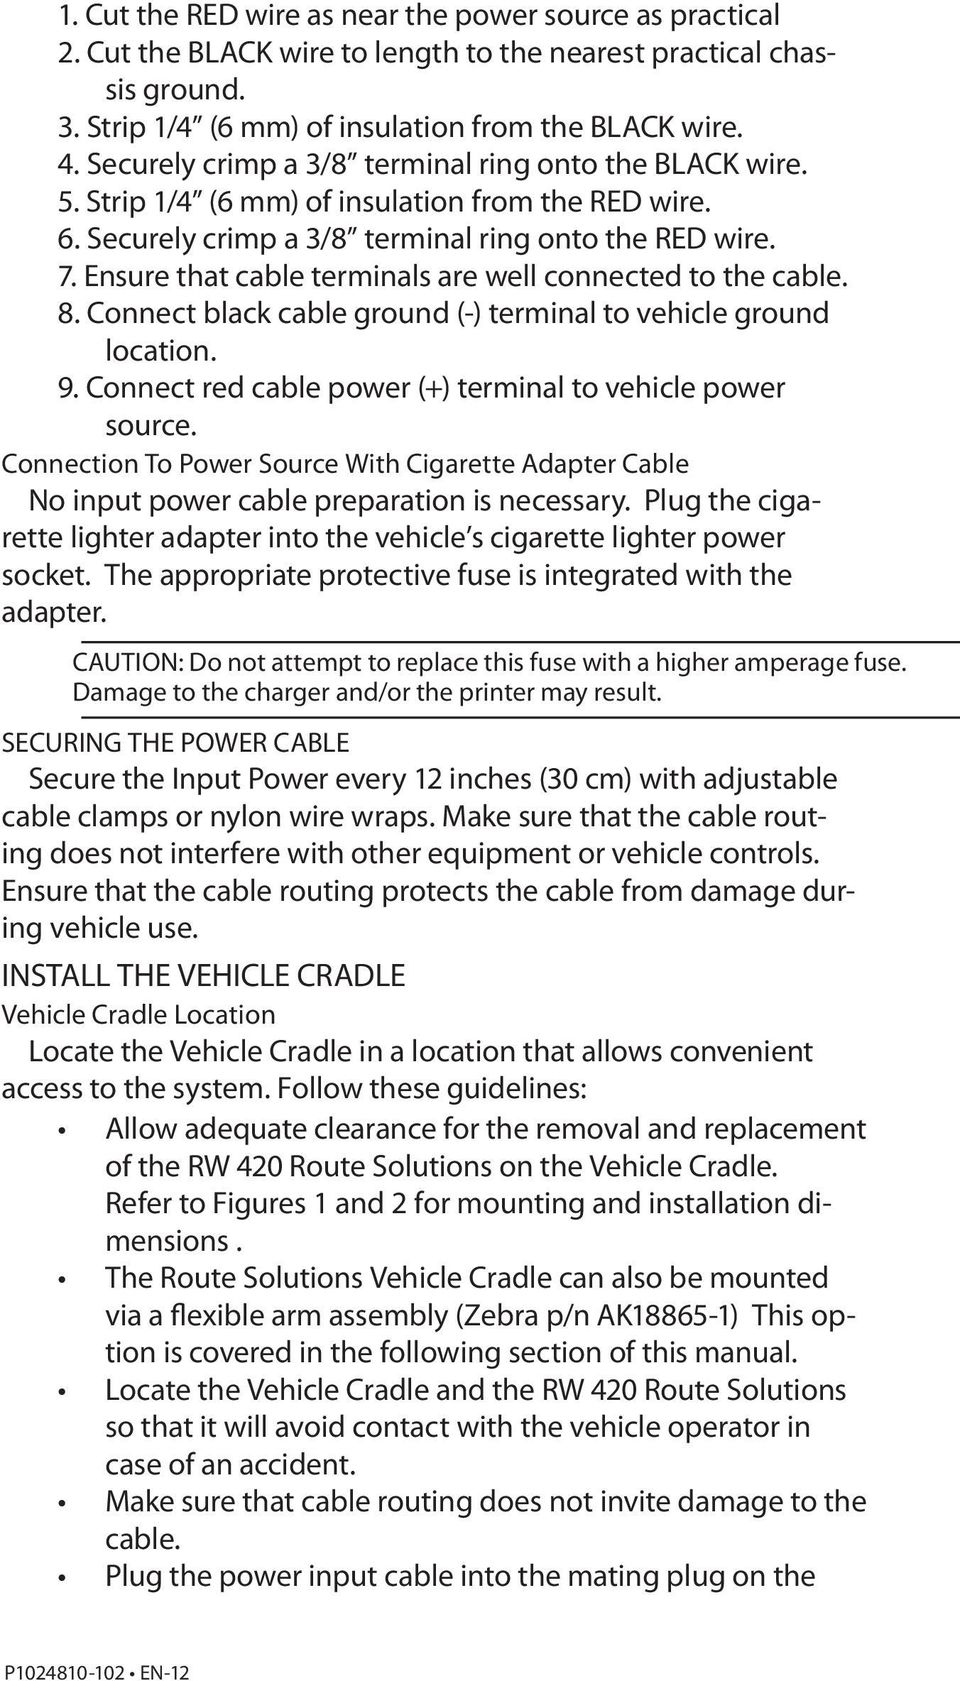 Ensure that cable terminals are well connected to the cable. 8. Connect black cable ground (-) terminal to vehicle ground location. 9. Connect red cable power (+) terminal to vehicle power source.